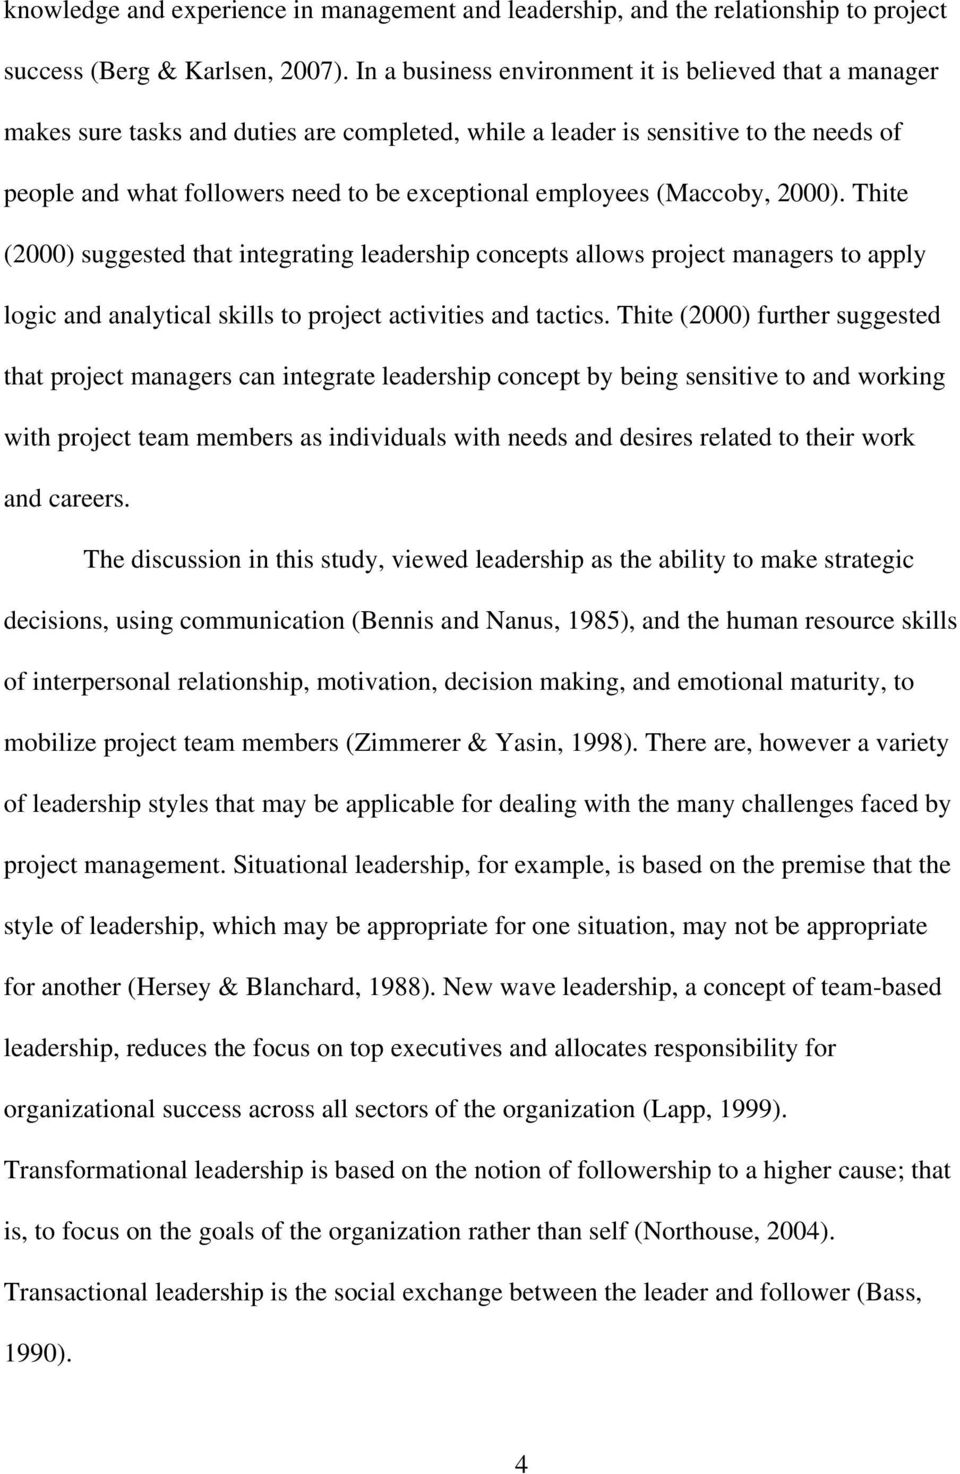 employees (Maccoby, 2000). Thite (2000) suggested that integrating leadership concepts allows project managers to apply logic and analytical skills to project activities and tactics.